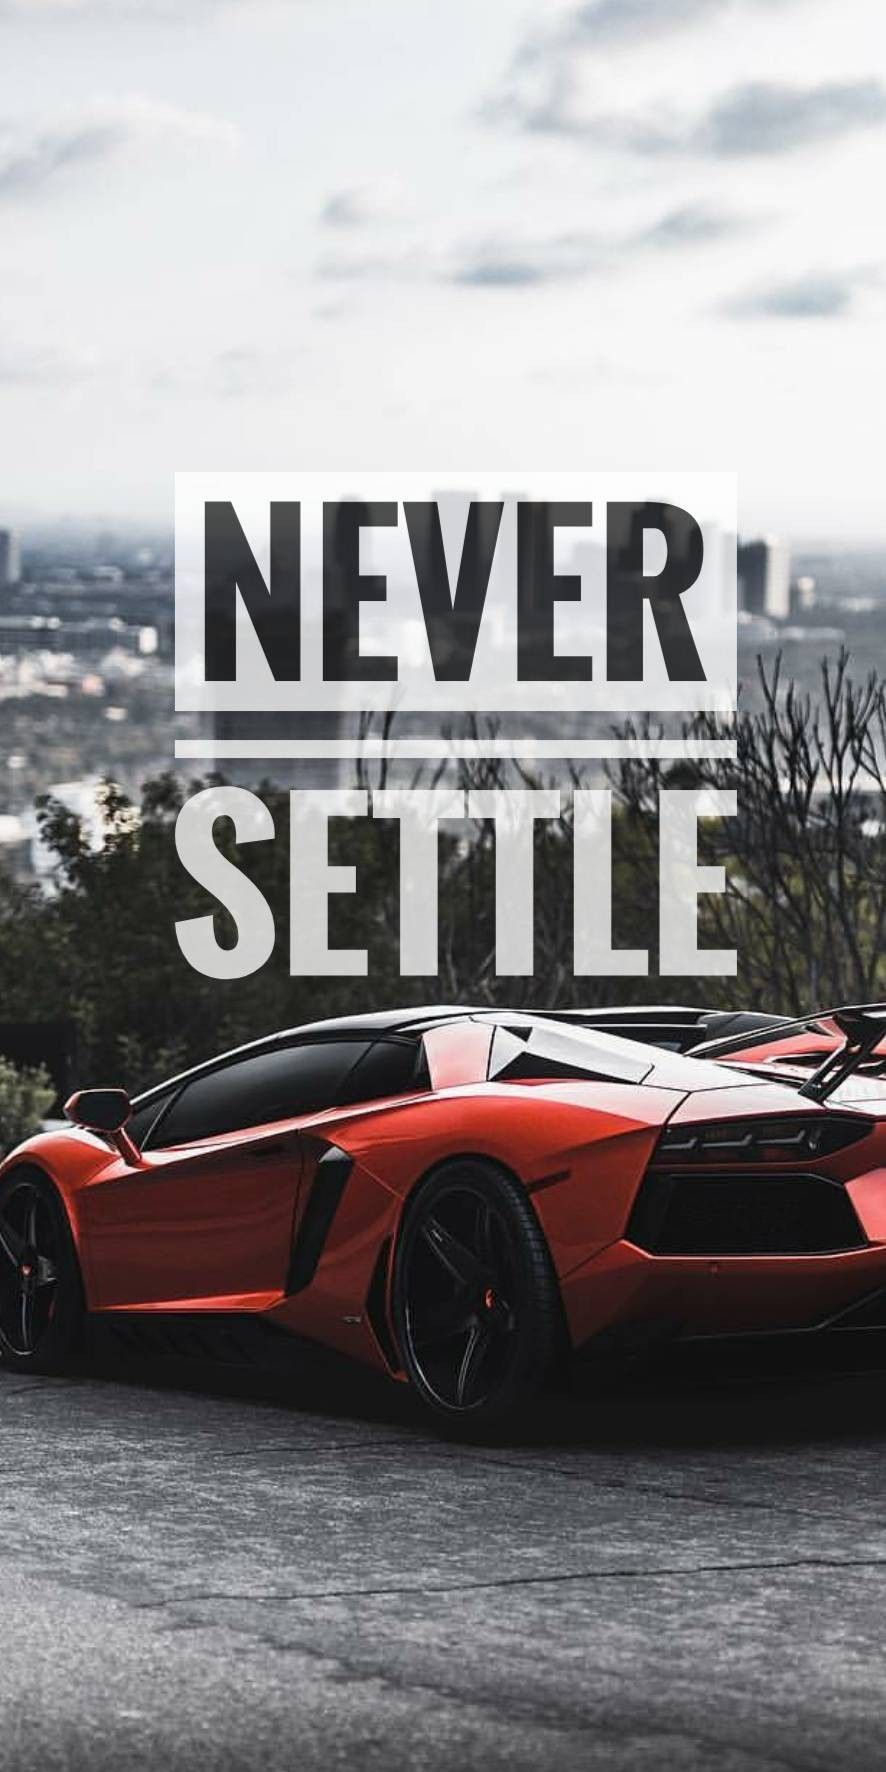 Pin By Flavin Titus On Never Settle In 2020 Never Settle Wallpapers Words Wallpaper Adidas Wallpapers